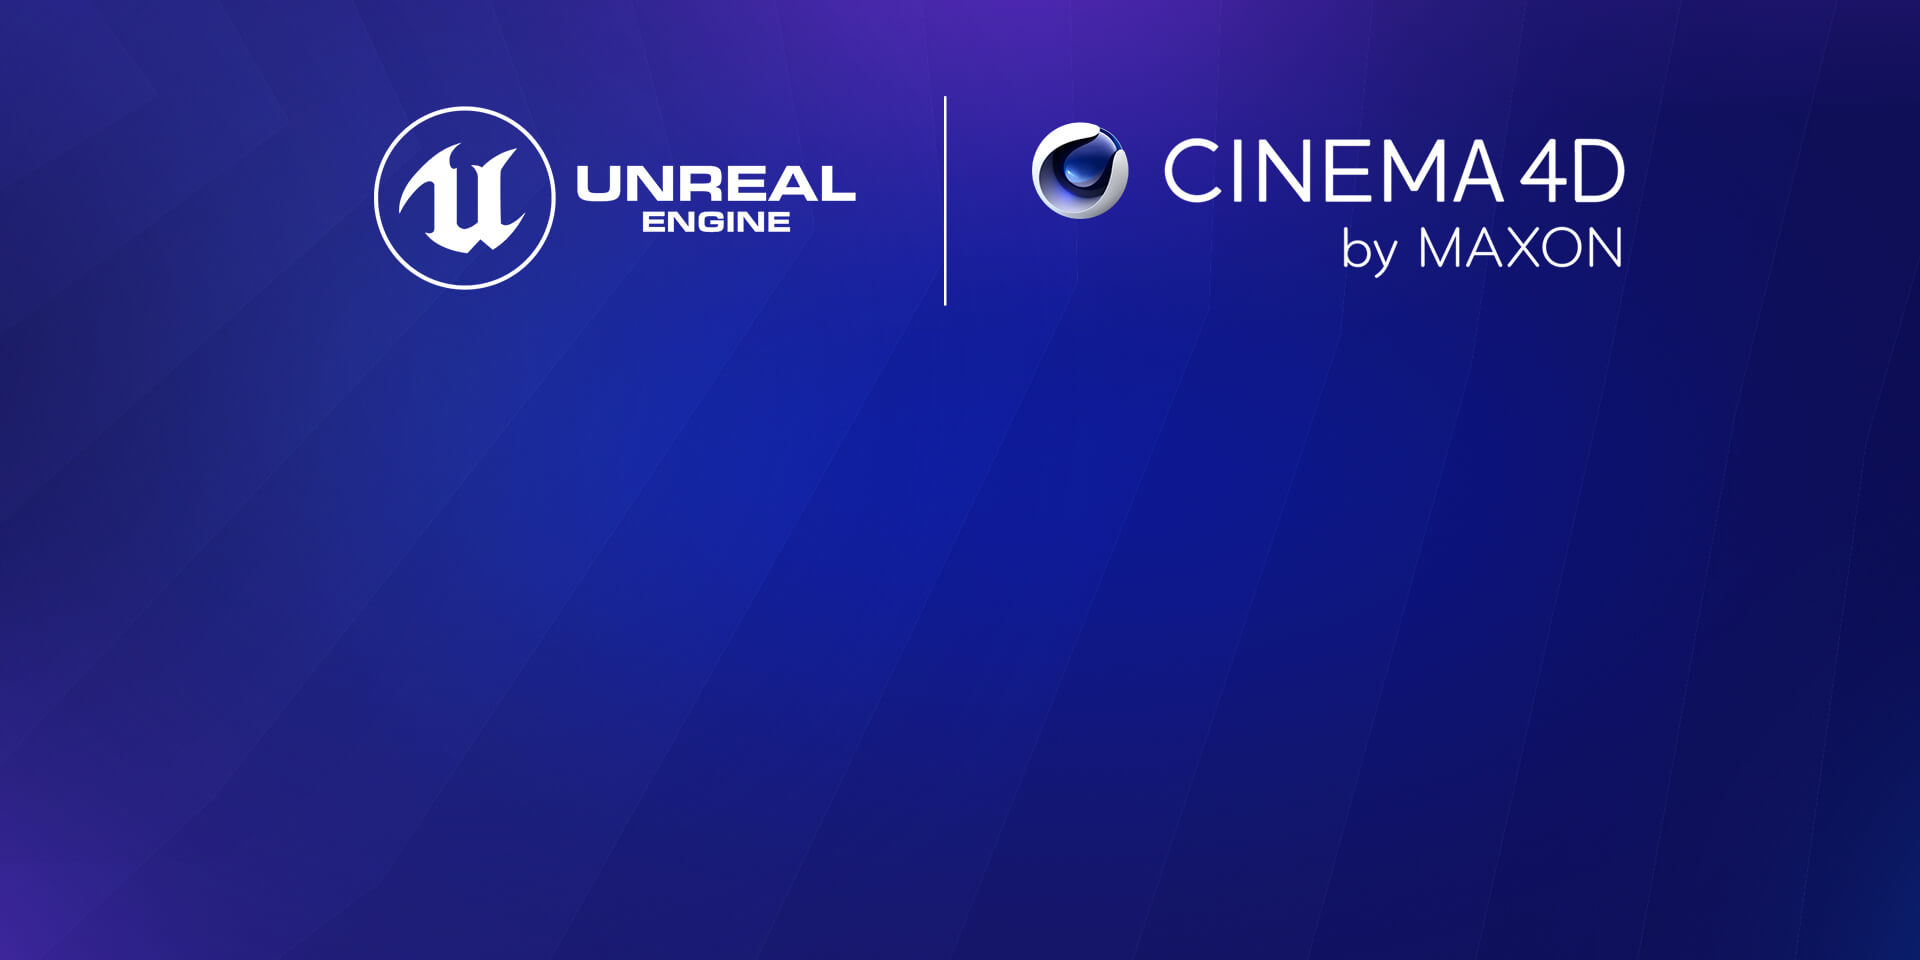 Unreal Engine Now Supports Maxon's Cinema 4D